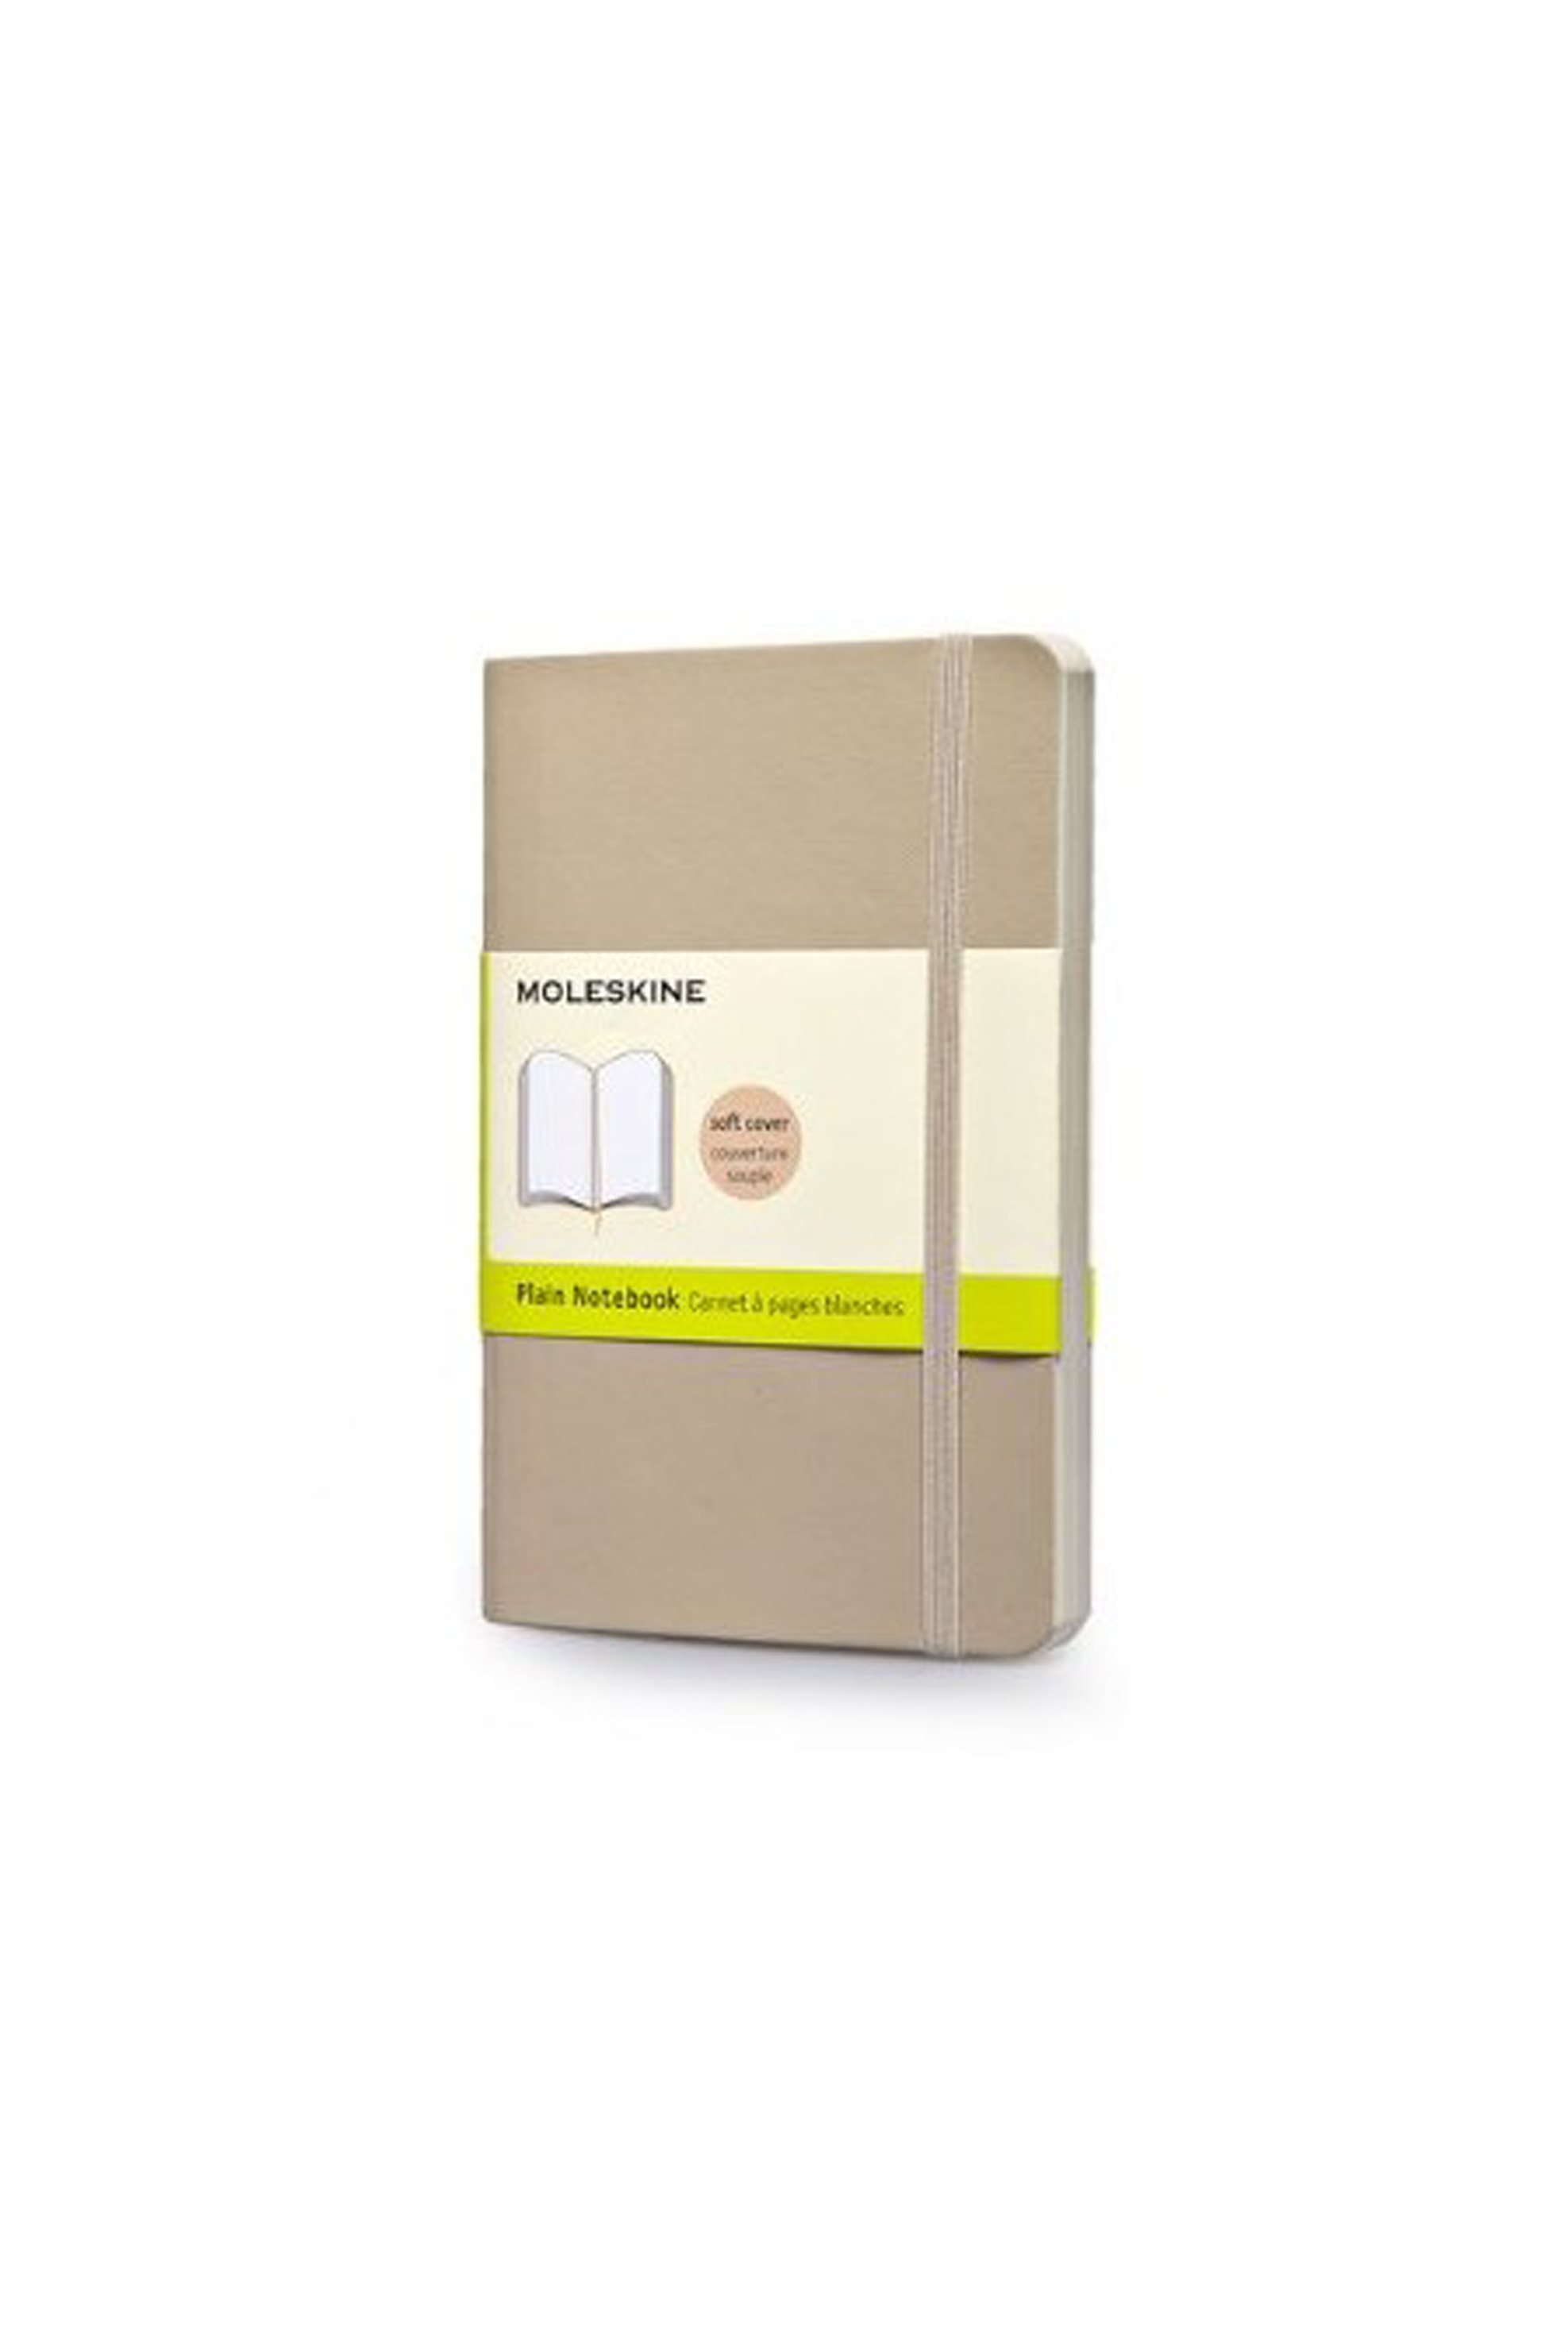 Moleskine σημειωματάριο Classic Plain Soft Pocket - QP613G4